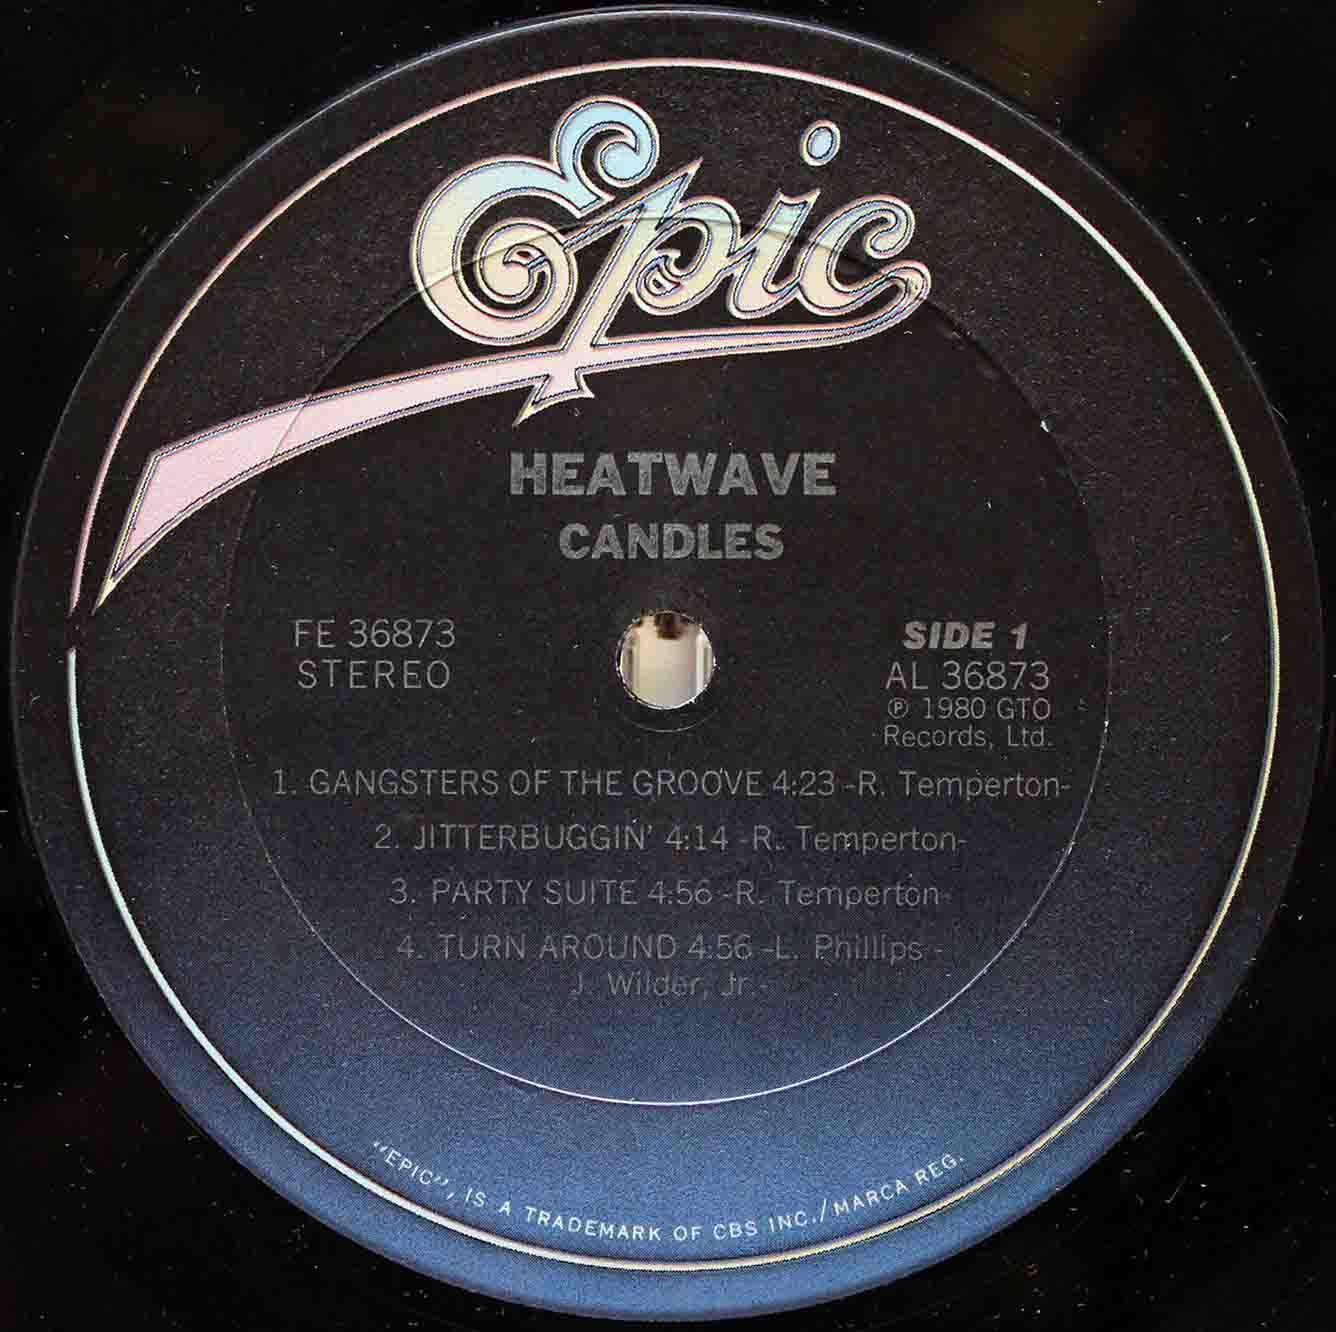 Heat wave candle 05